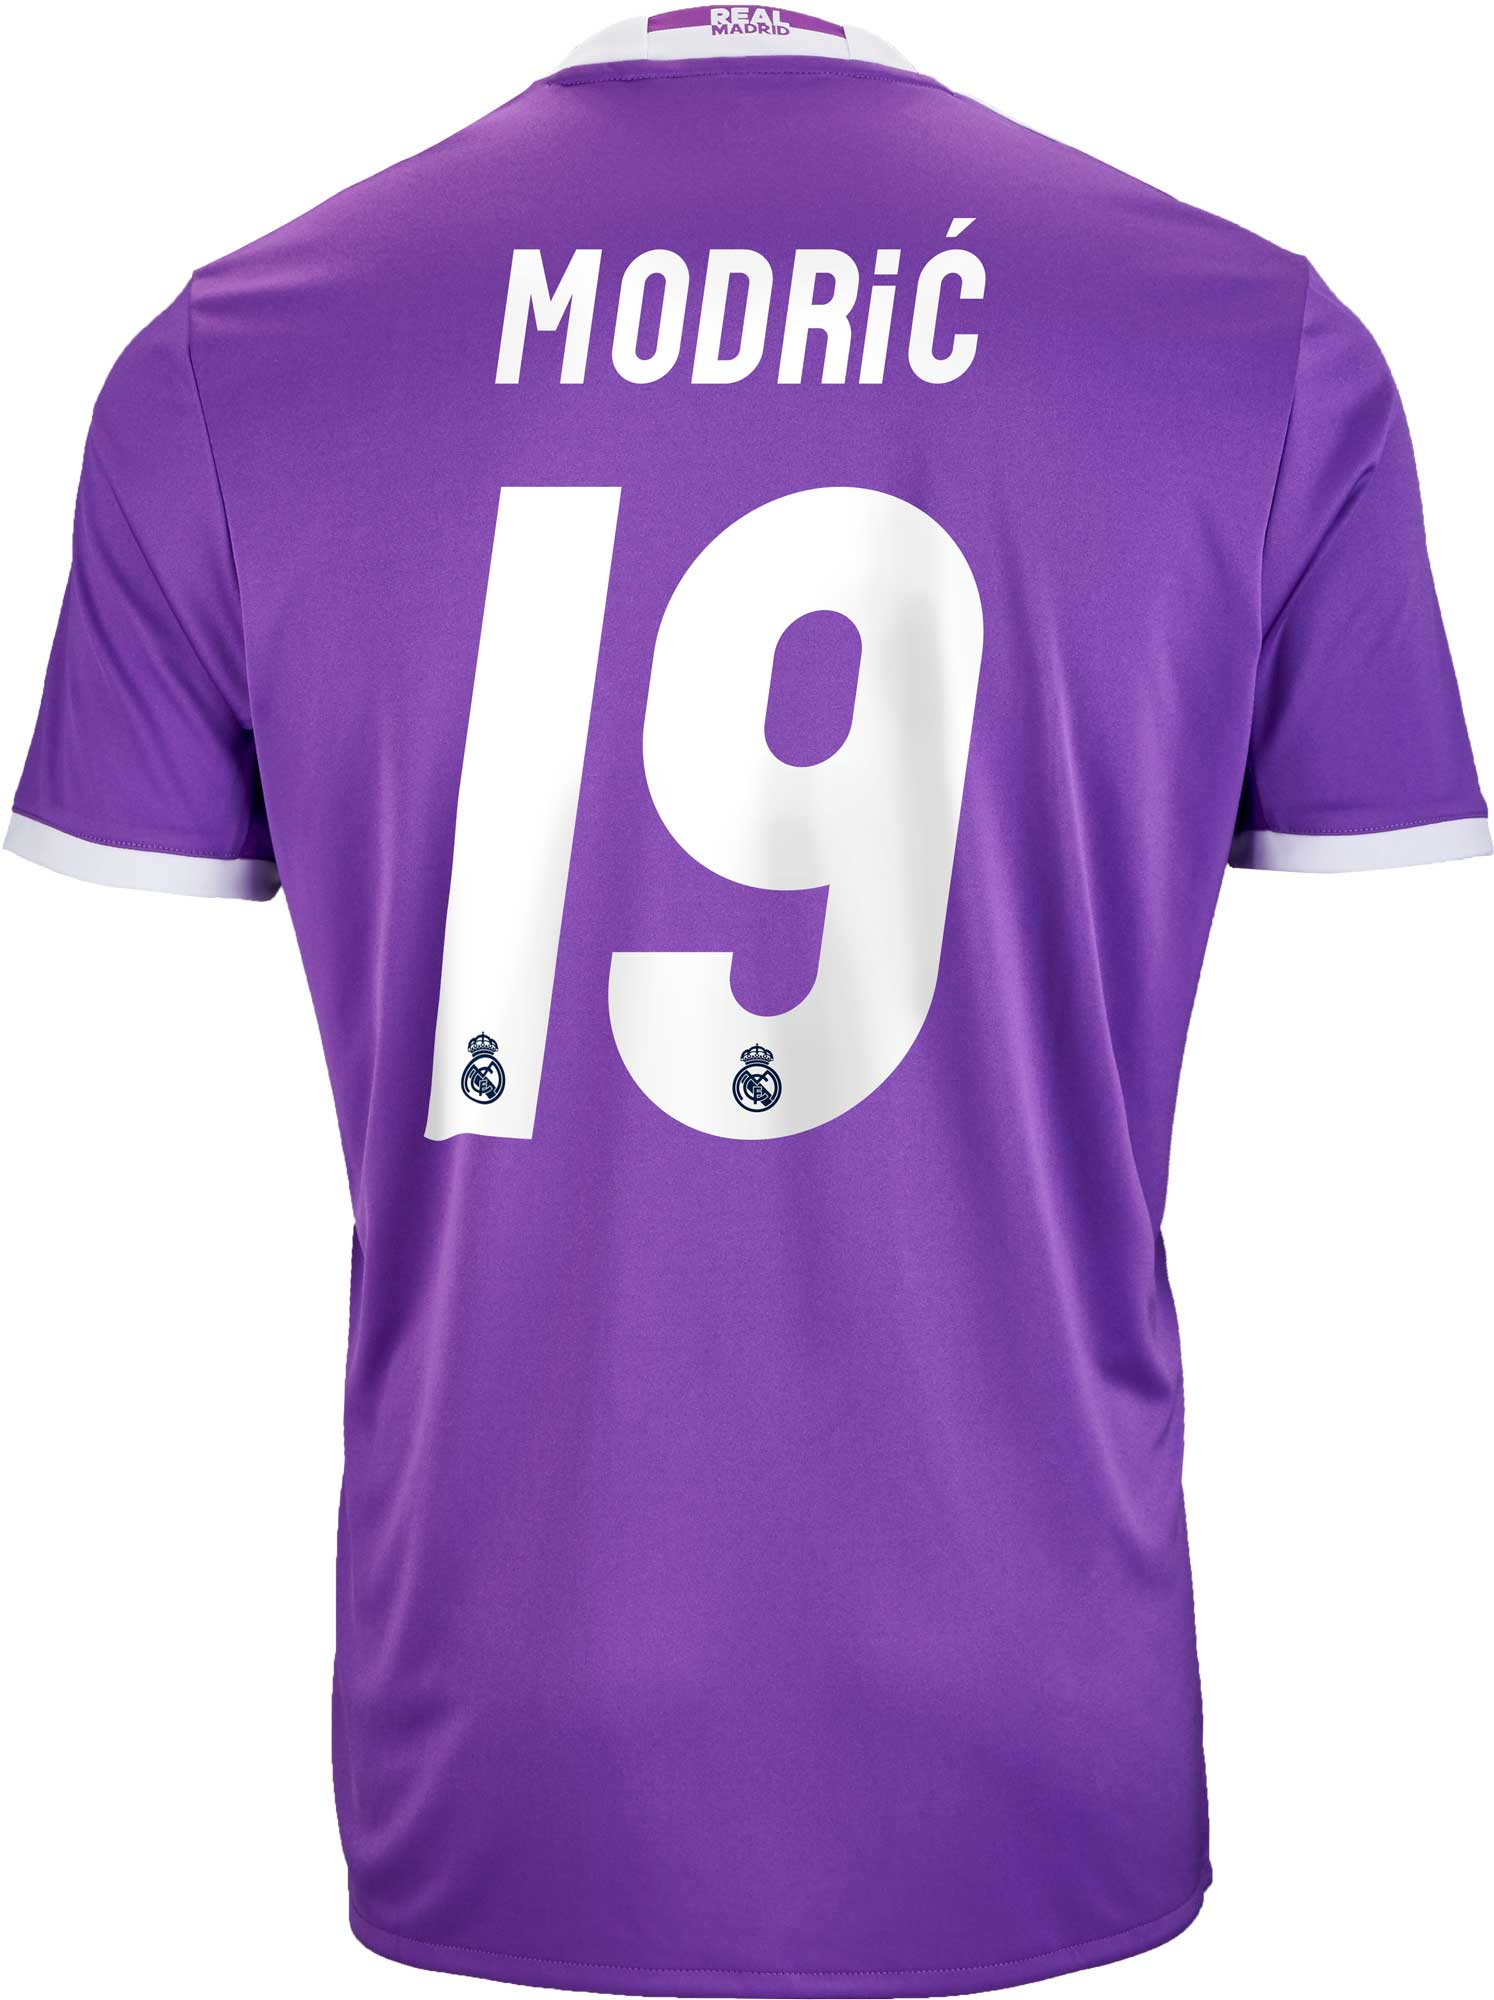 100% authentic 304a8 0ac01 adidas Luka Modric Real Madrid Jersey - 2016 Real Madrid Jerseys